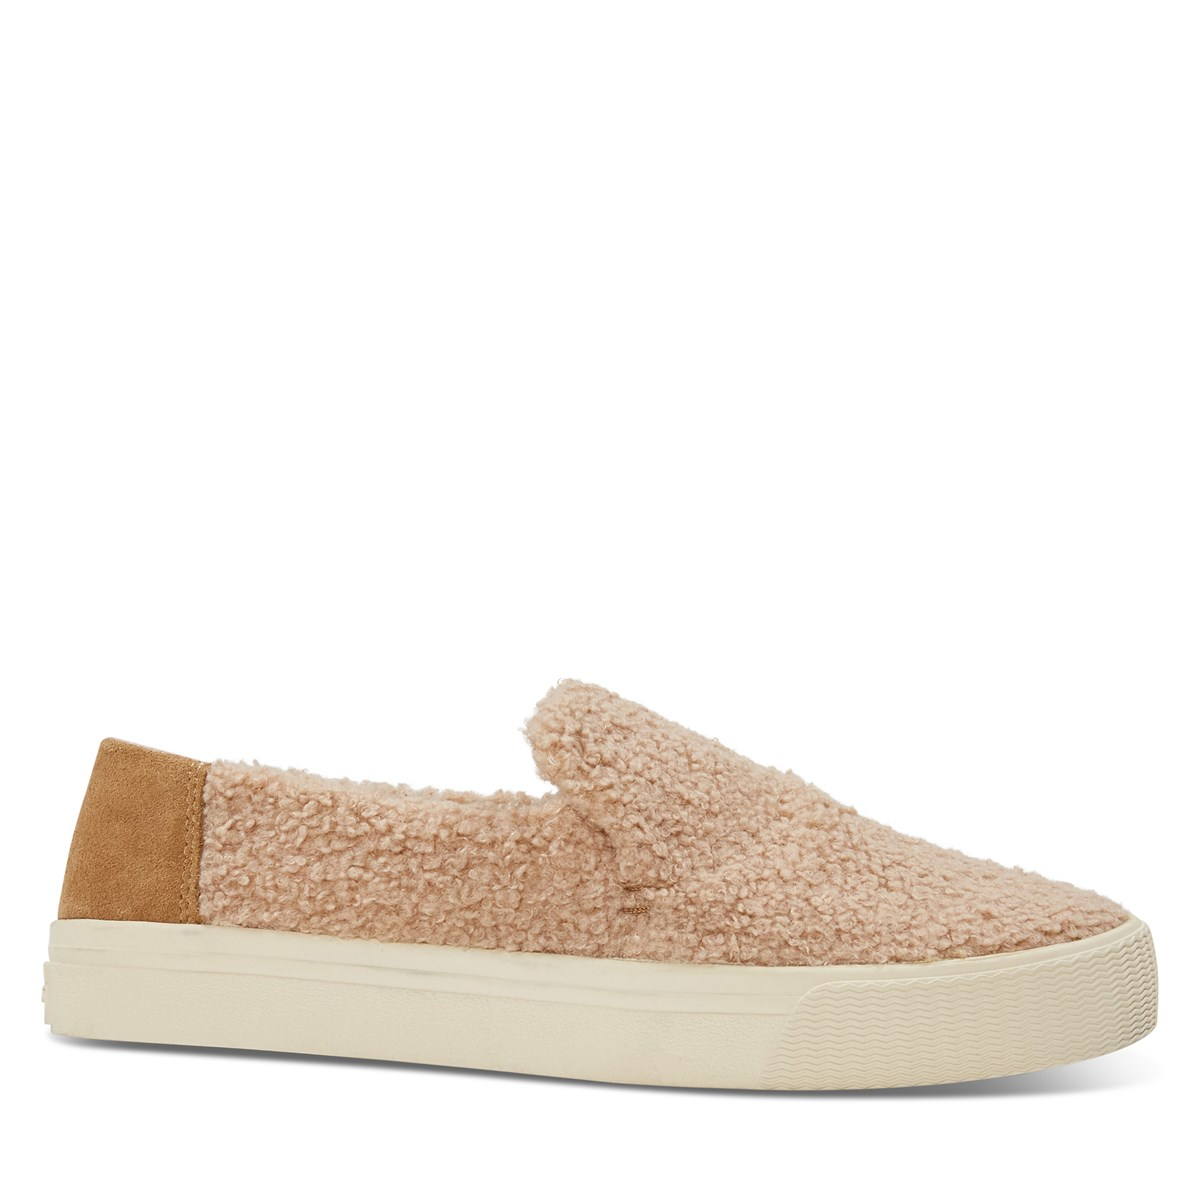 Women's Sunset Shearling Slip-On Shoes in Light Brown